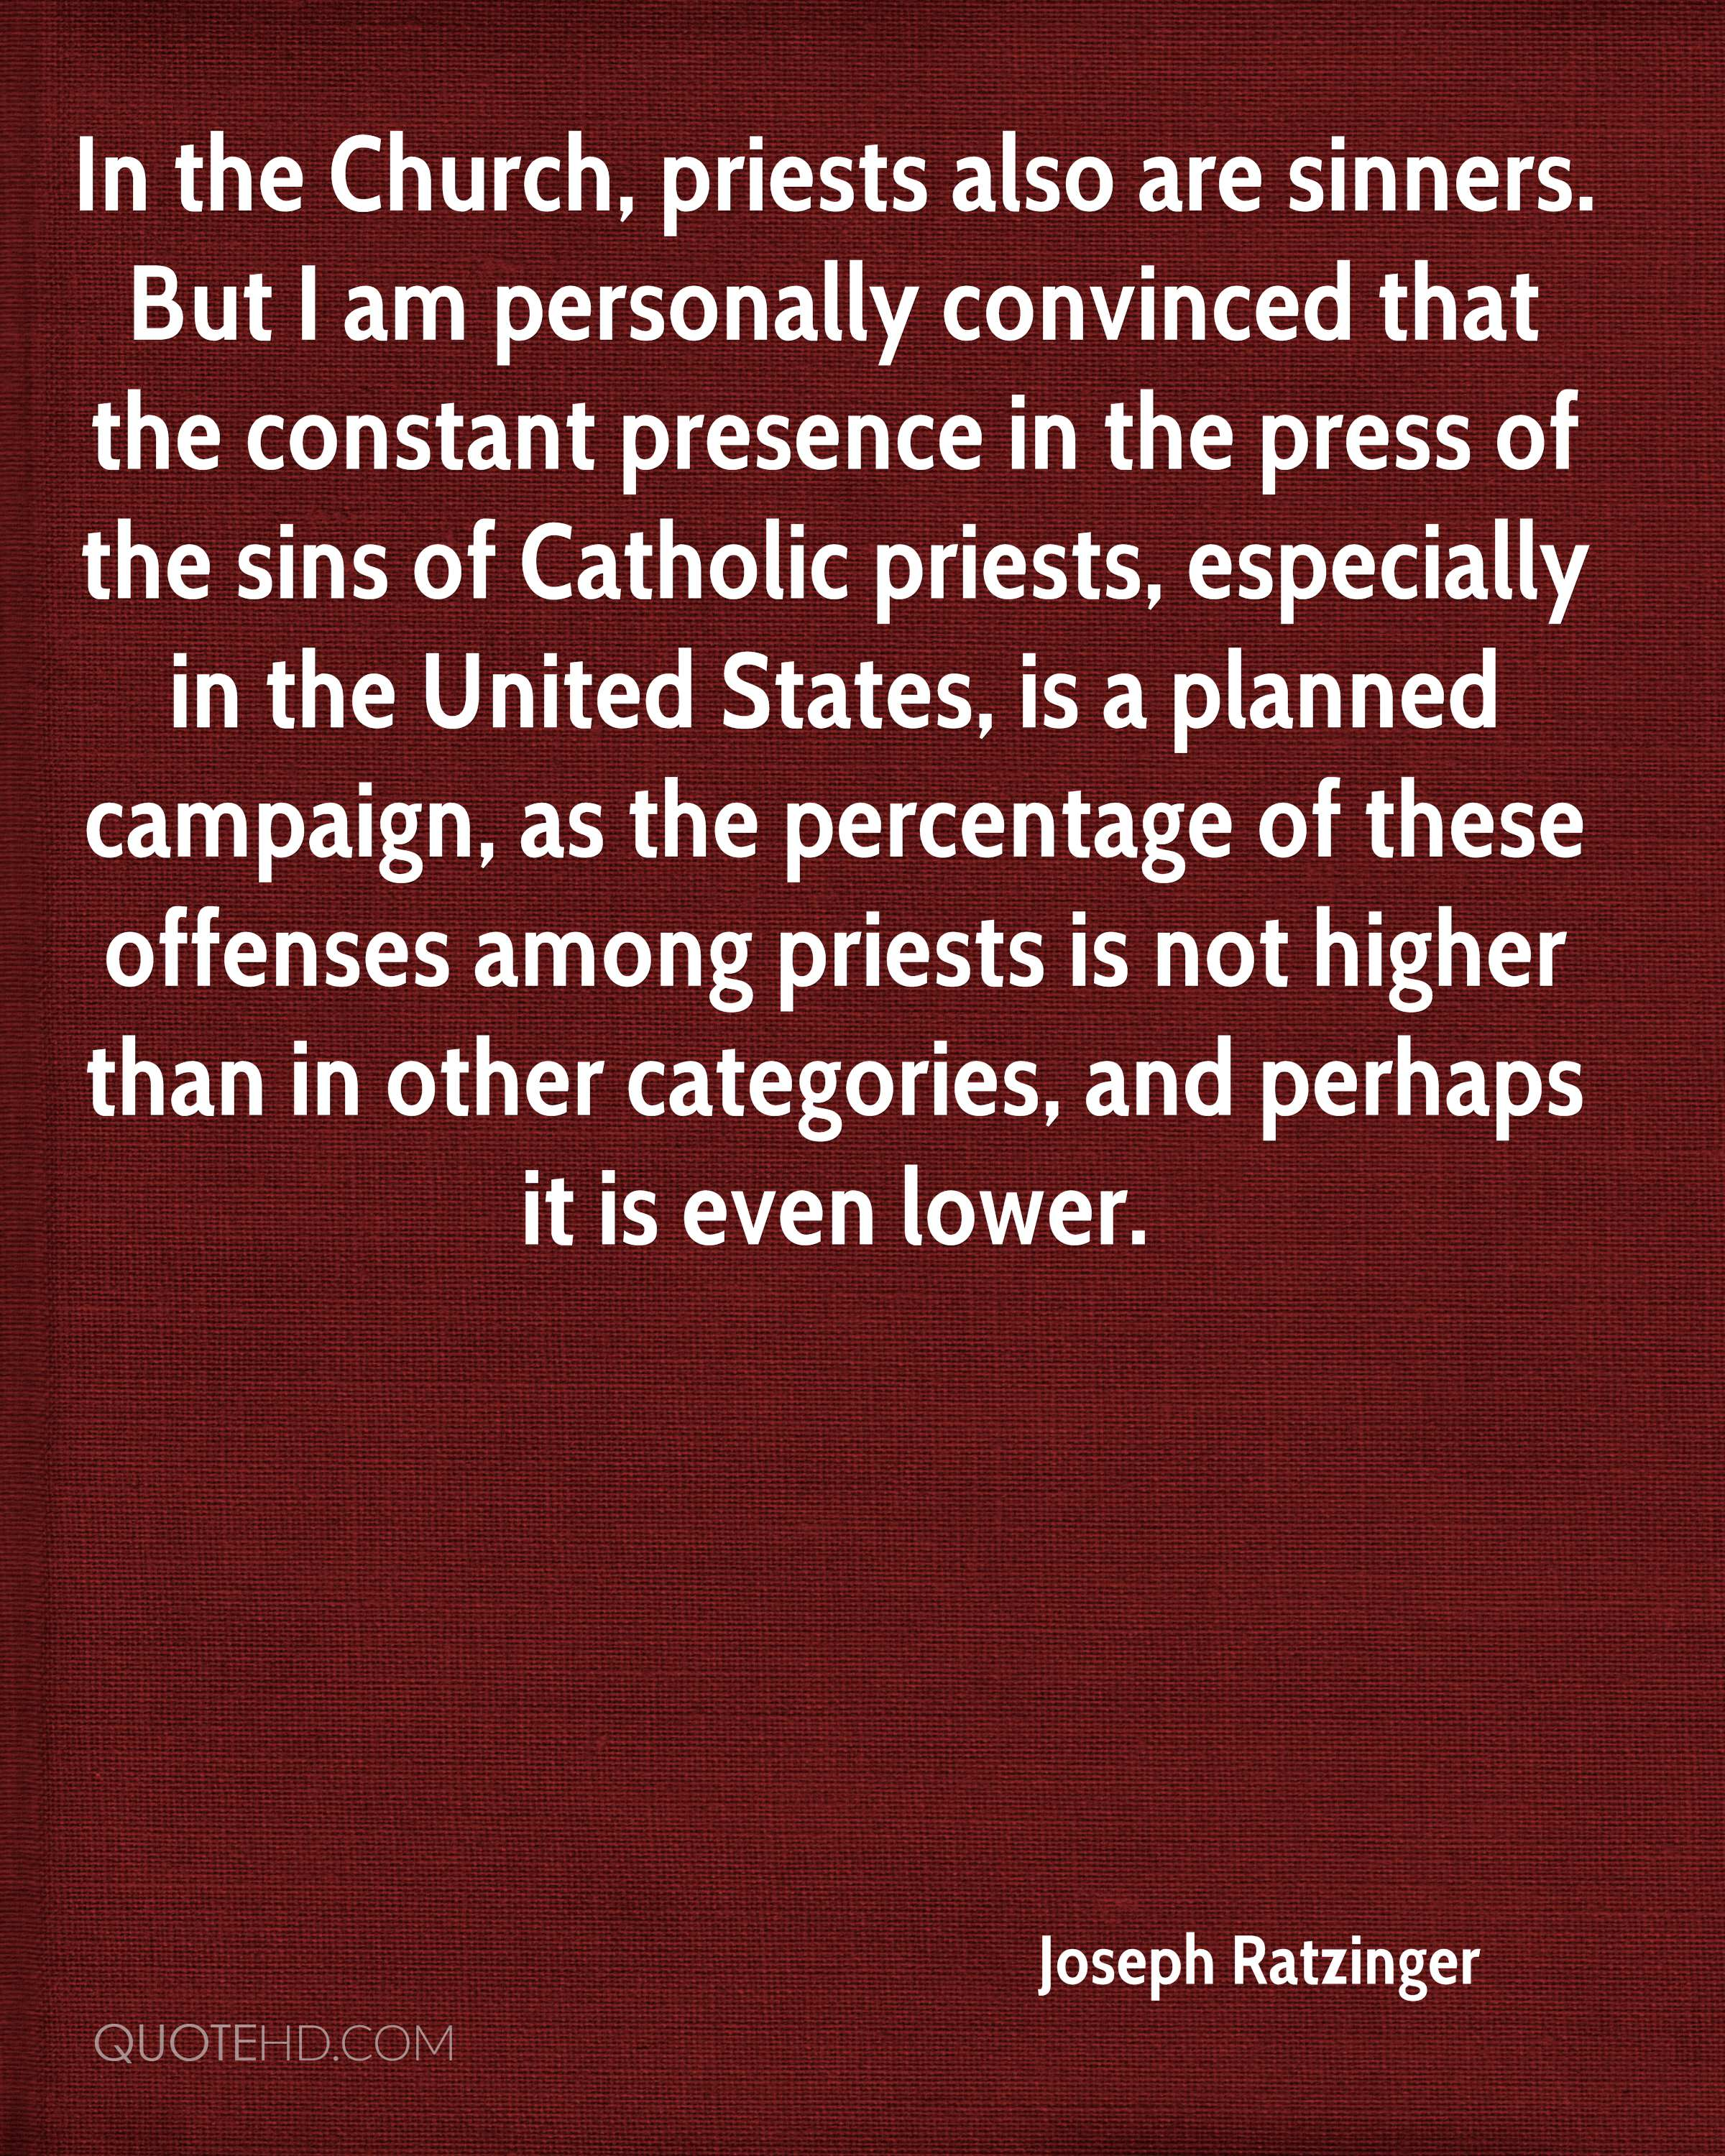 In the Church, priests also are sinners. But I am personally convinced that the constant presence in the press of the sins of Catholic priests, especially in the United States, is a planned campaign, as the percentage of these offenses among priests is not higher than in other categories, and perhaps it is even lower.